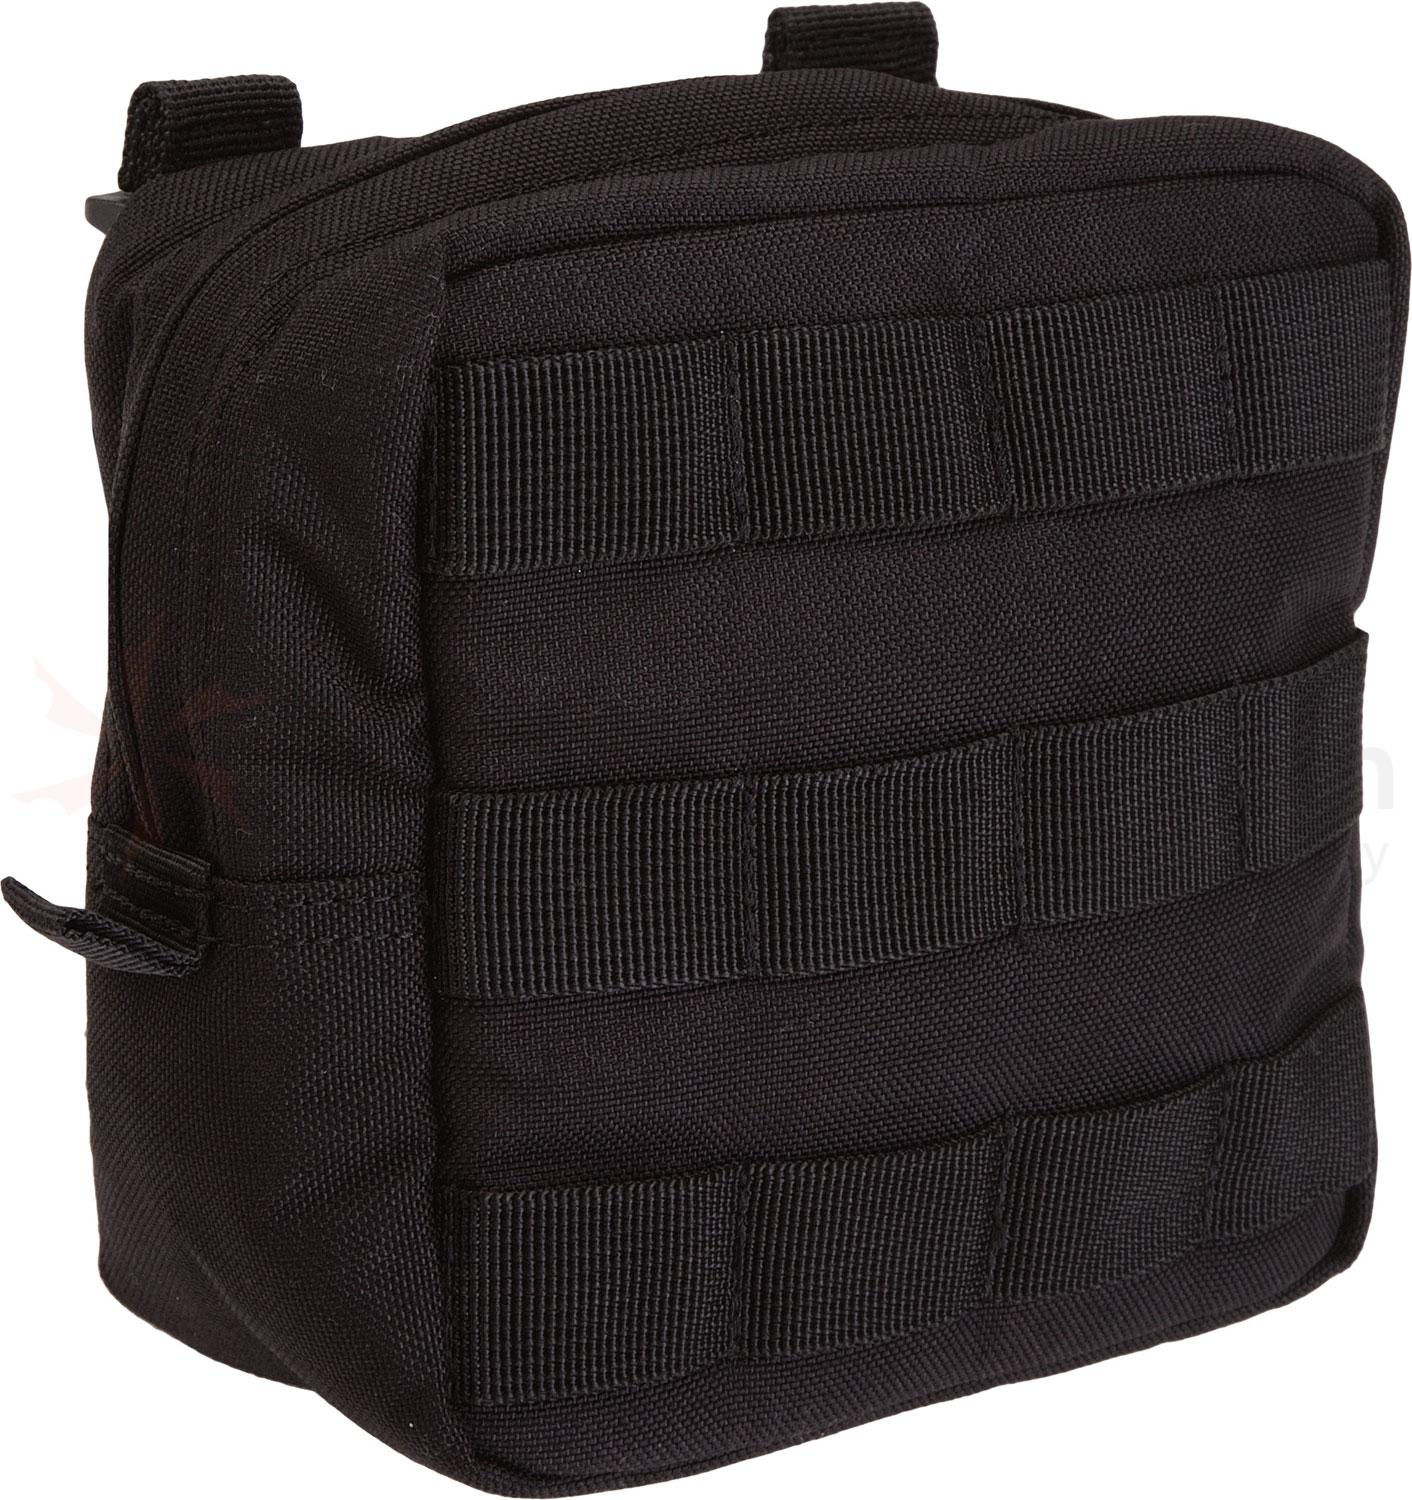 5.11 Tactical 6.6 Padded Pouch, Black (58714-019)